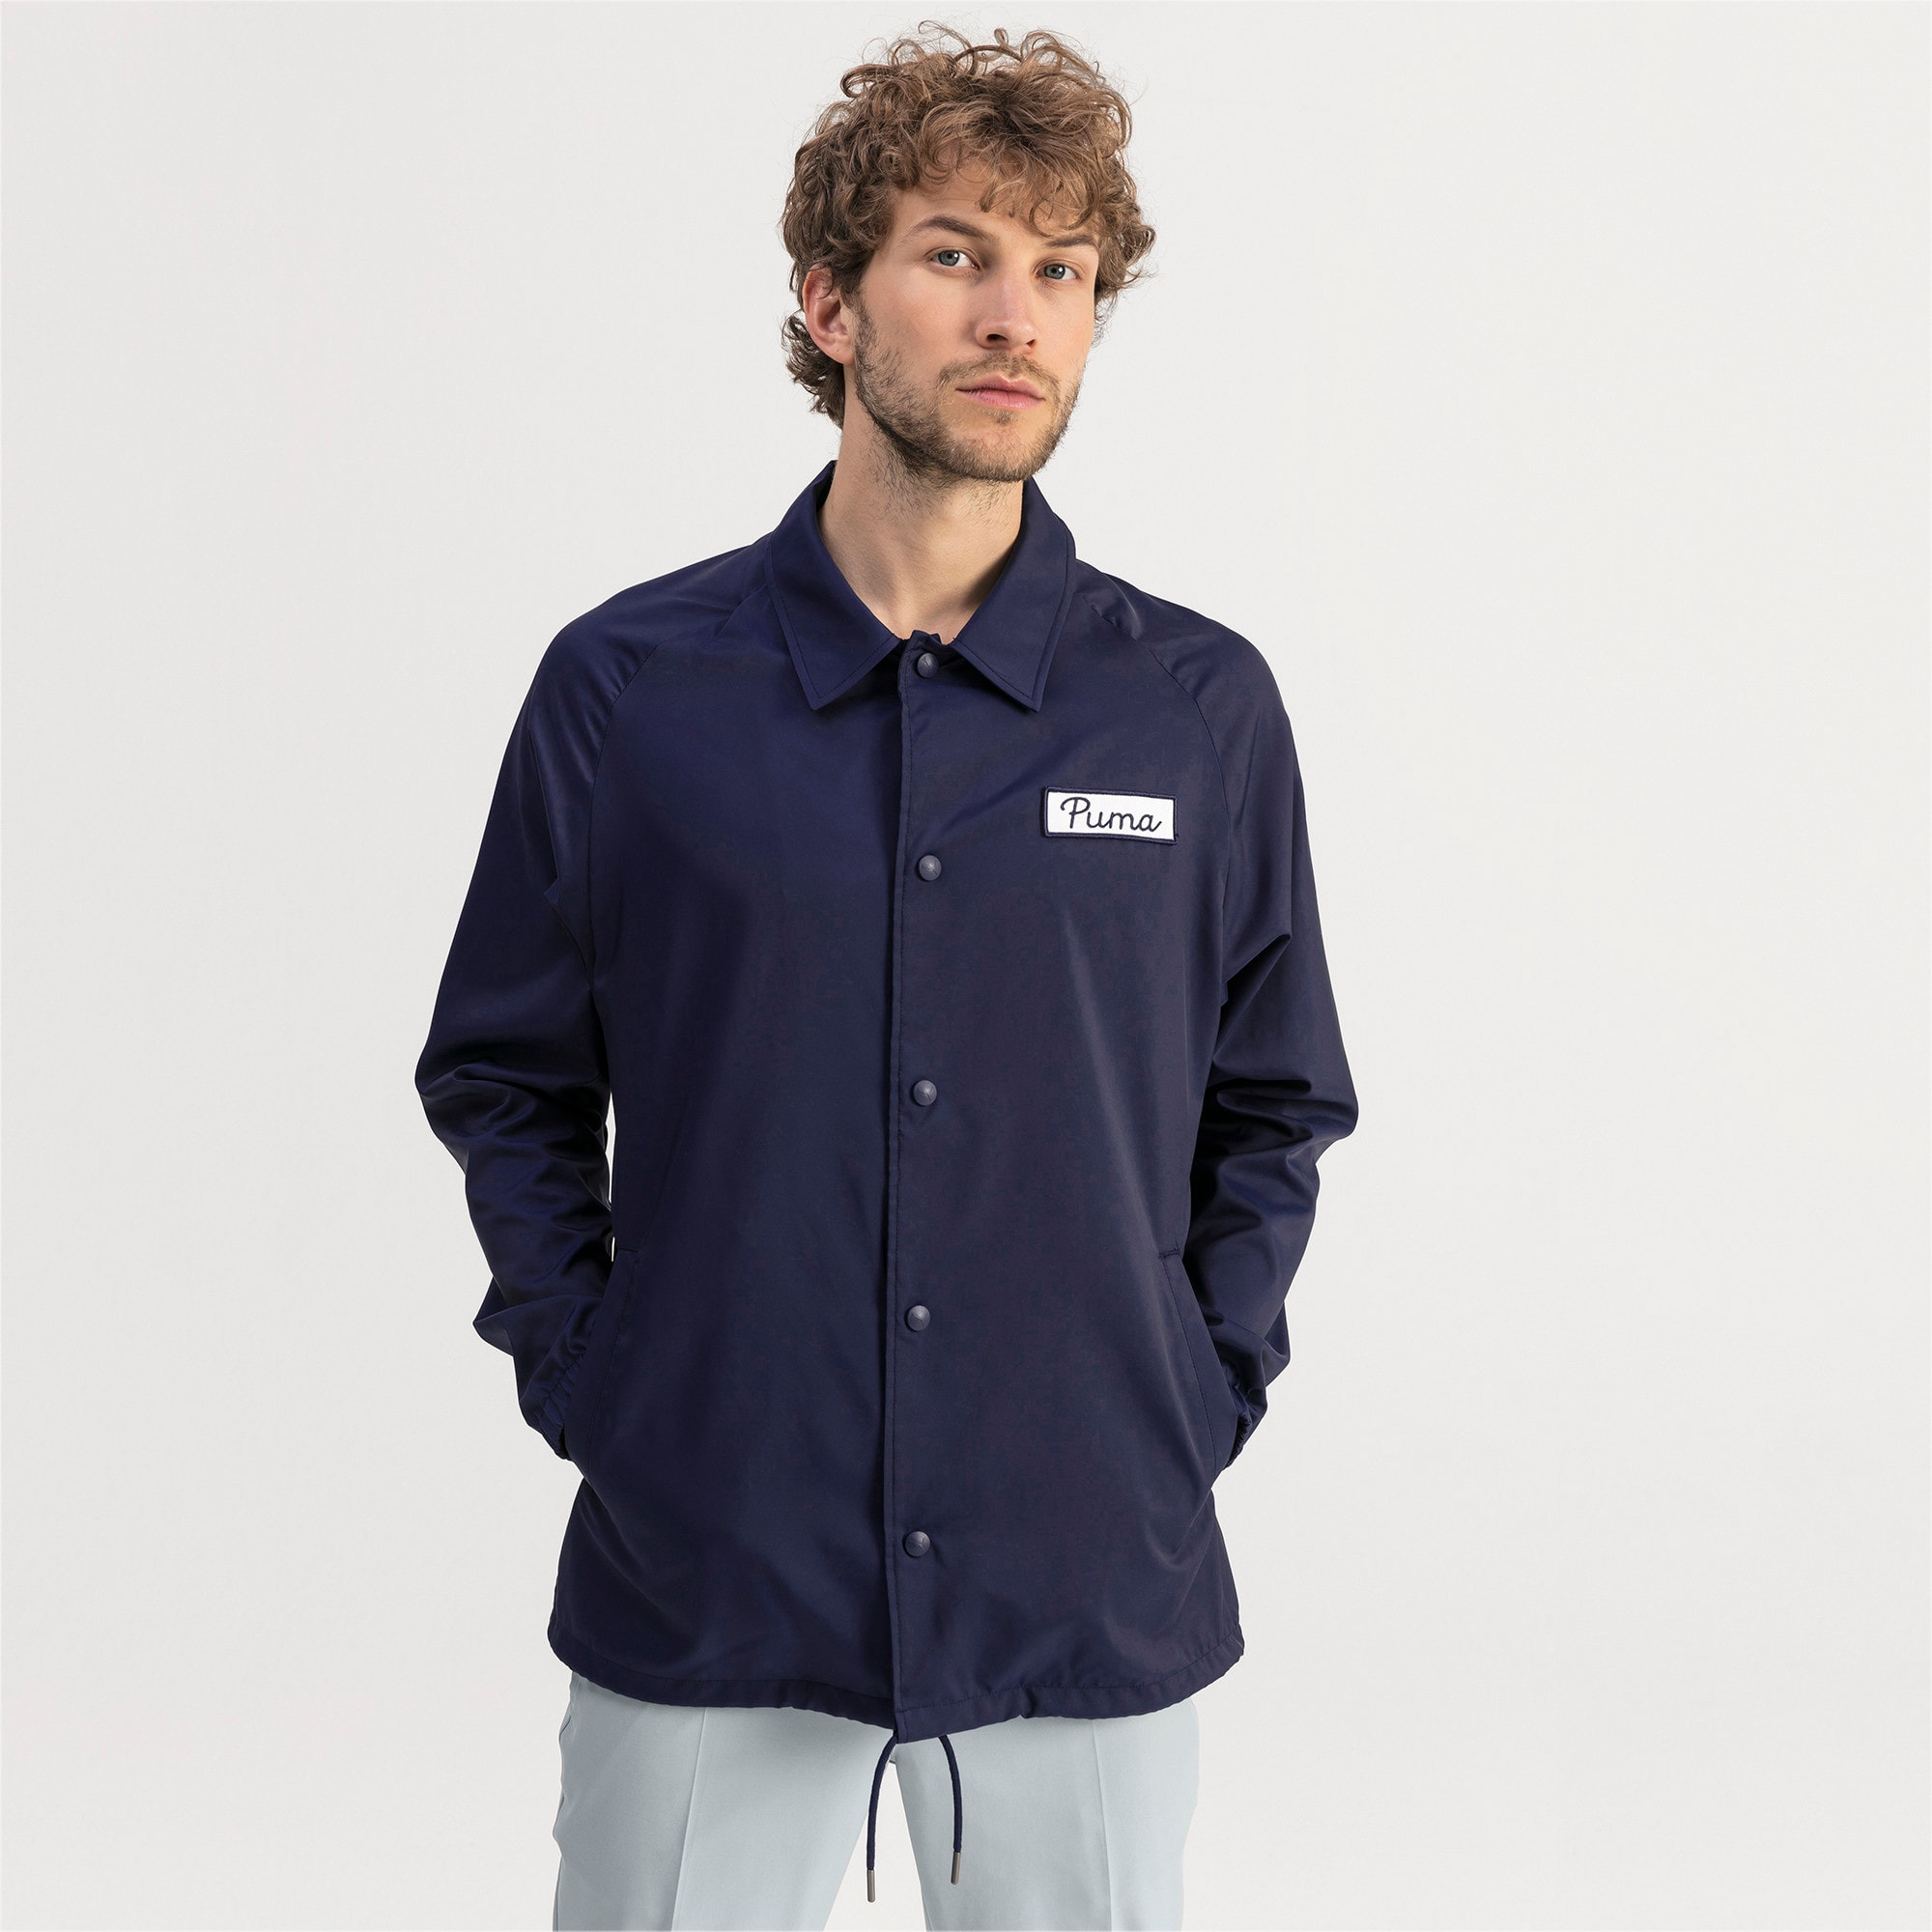 Thumbnail 1 of Blouson Coaches Golf pour homme, Peacoat, medium